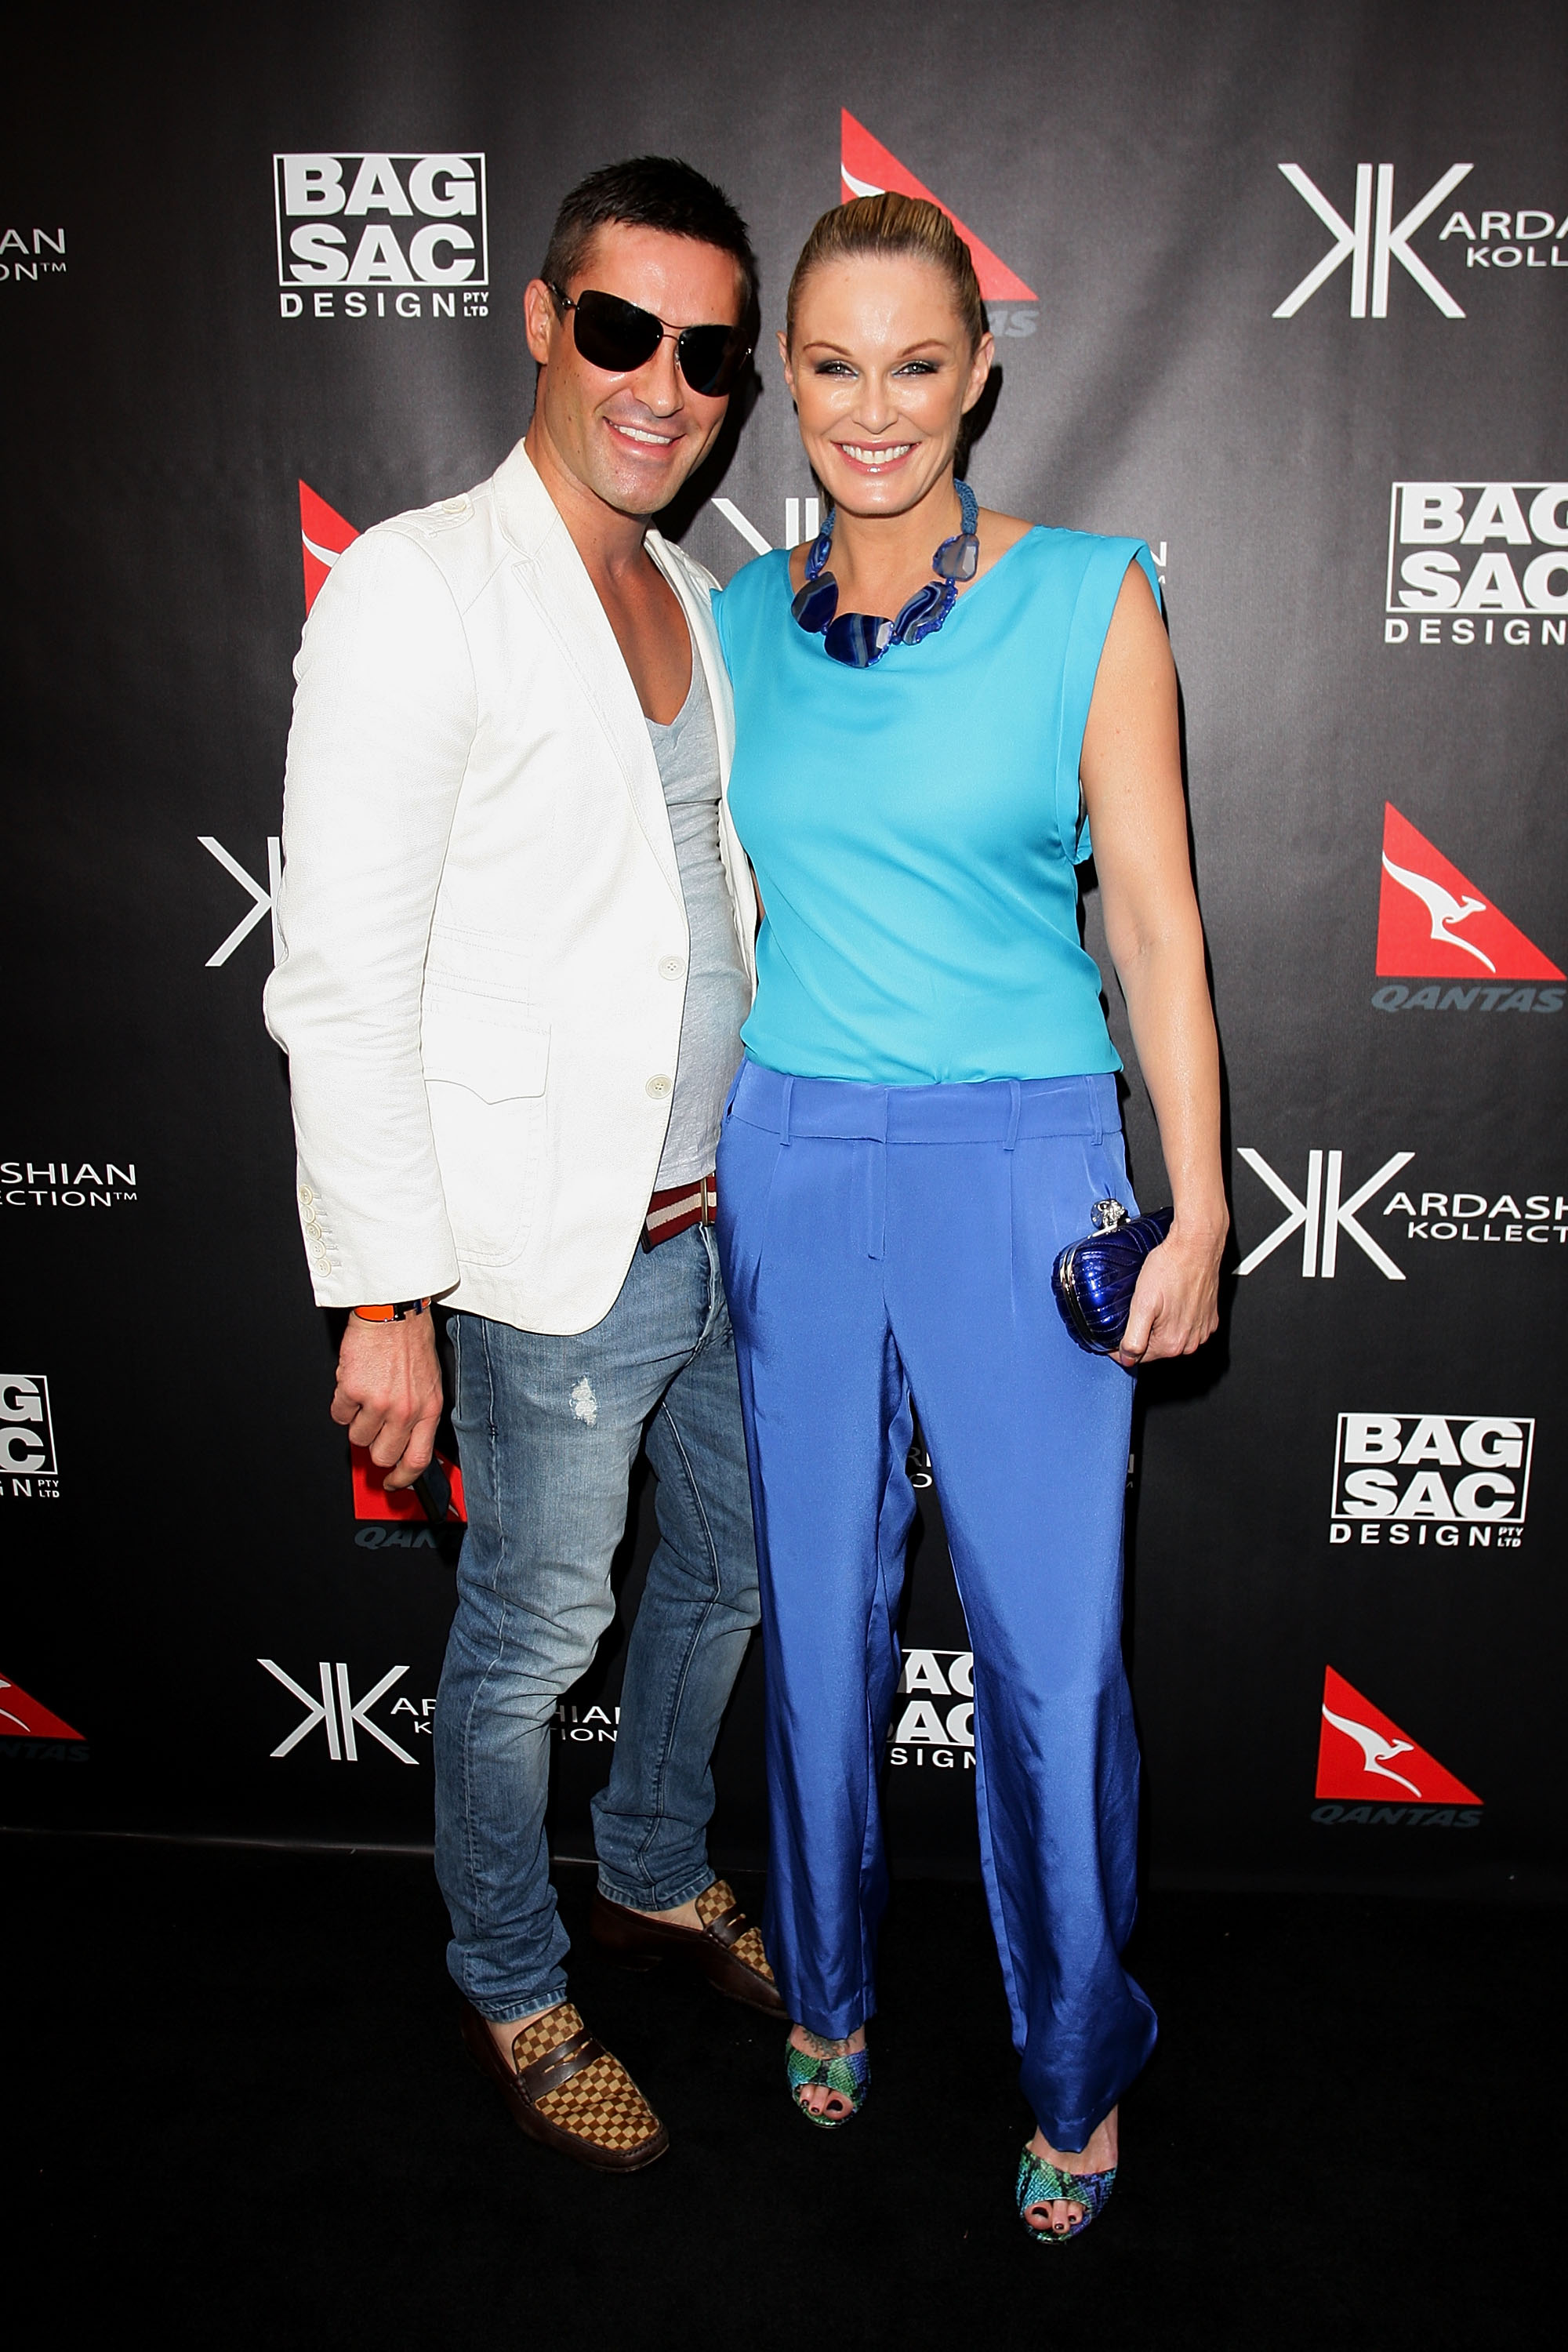 Adam Williams and Charlotte Dawson at the Kardashian Kollection launch.